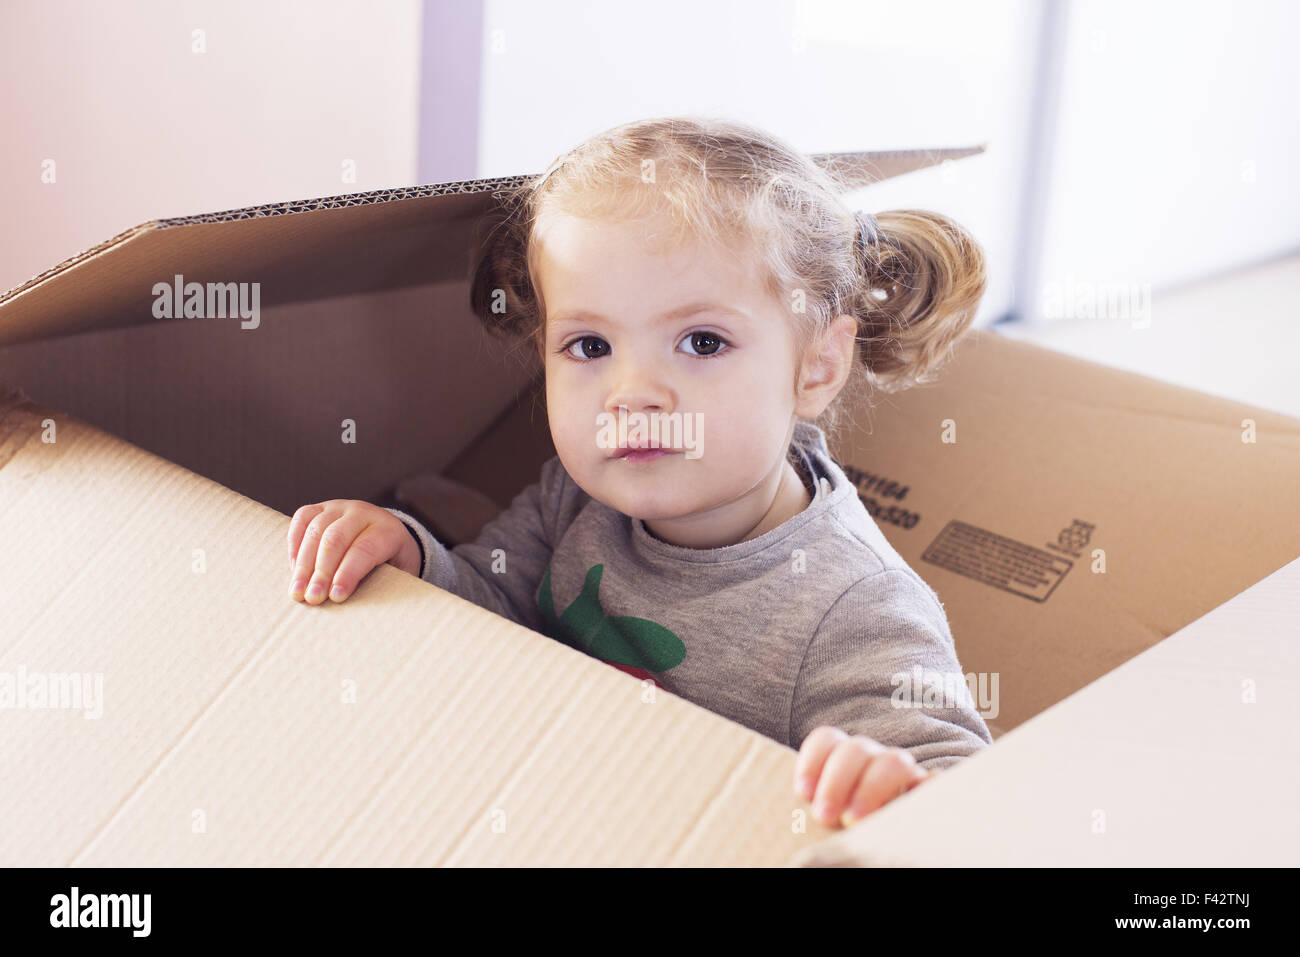 Little girl playing in cardboard box, portrait - Stock Image